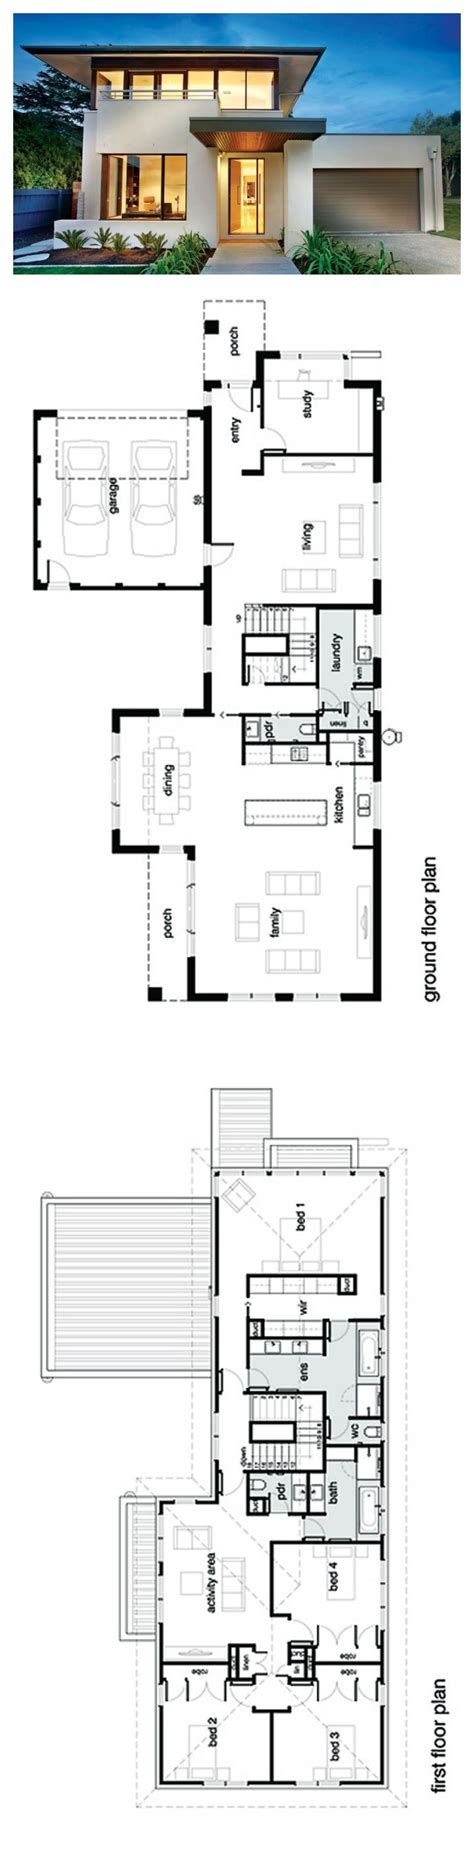 Modern Contemporary Floor Plans | best 25 modern house plans ideas on pinterest modern floor plans modern house floor plans